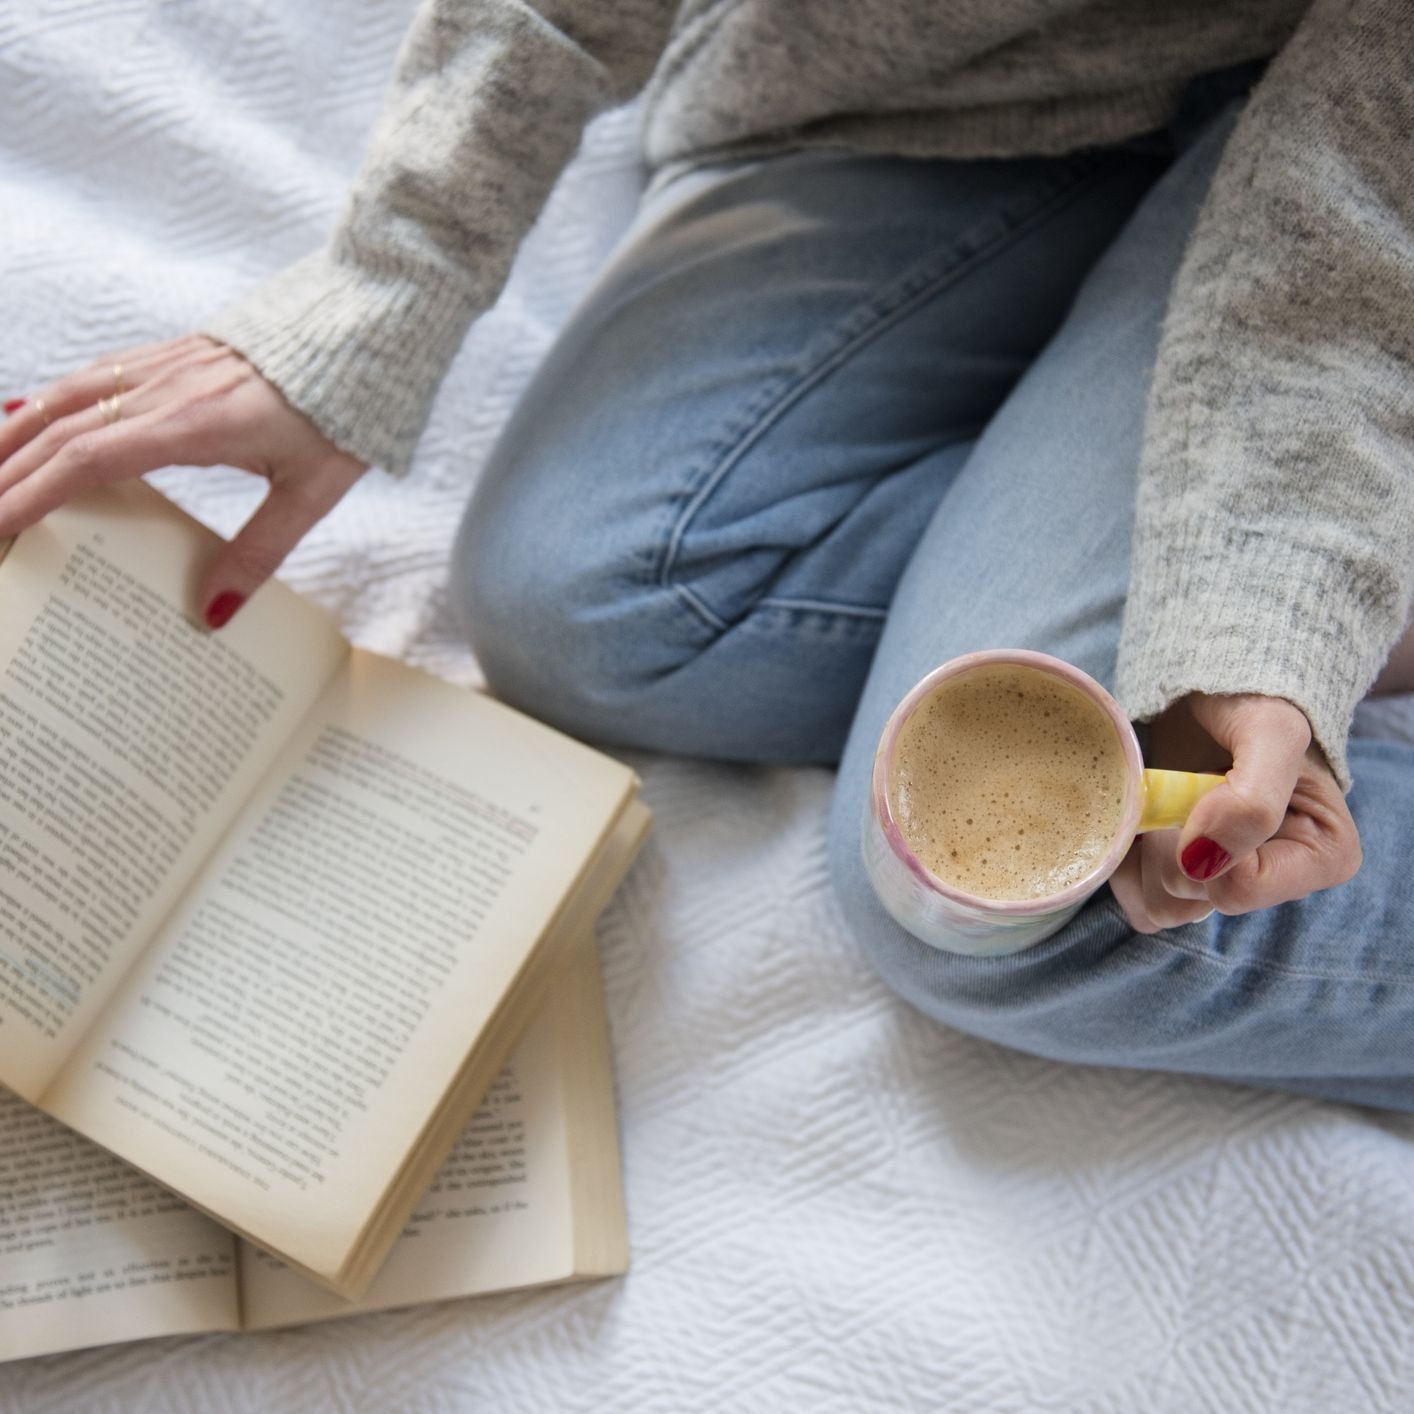 12 Classic Books Under 200 Pages You Can Read in 2 Hours Flat